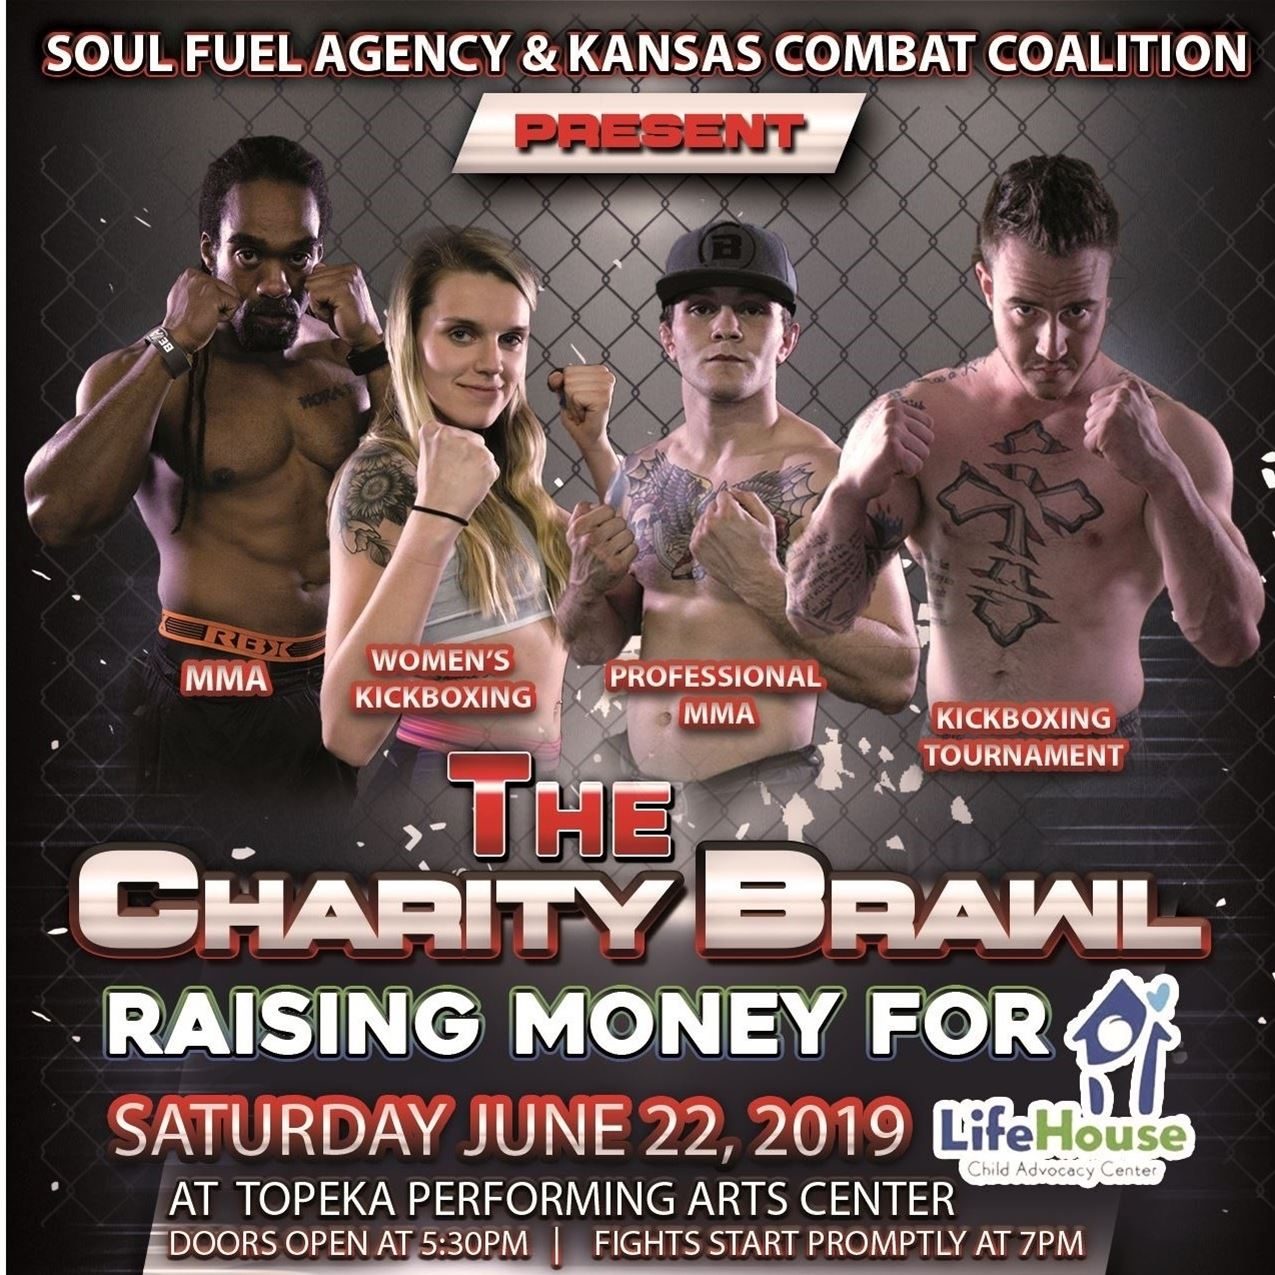 The KCC Presents: The Charity Brawl